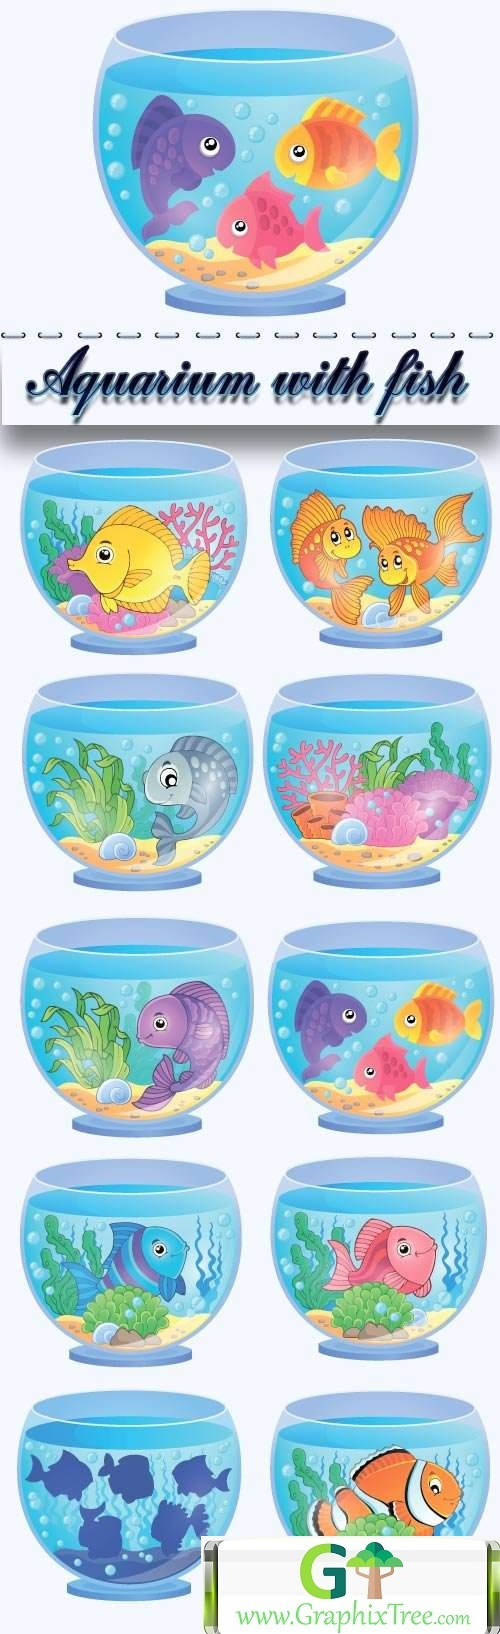 Aquarium with fish cartoon vector